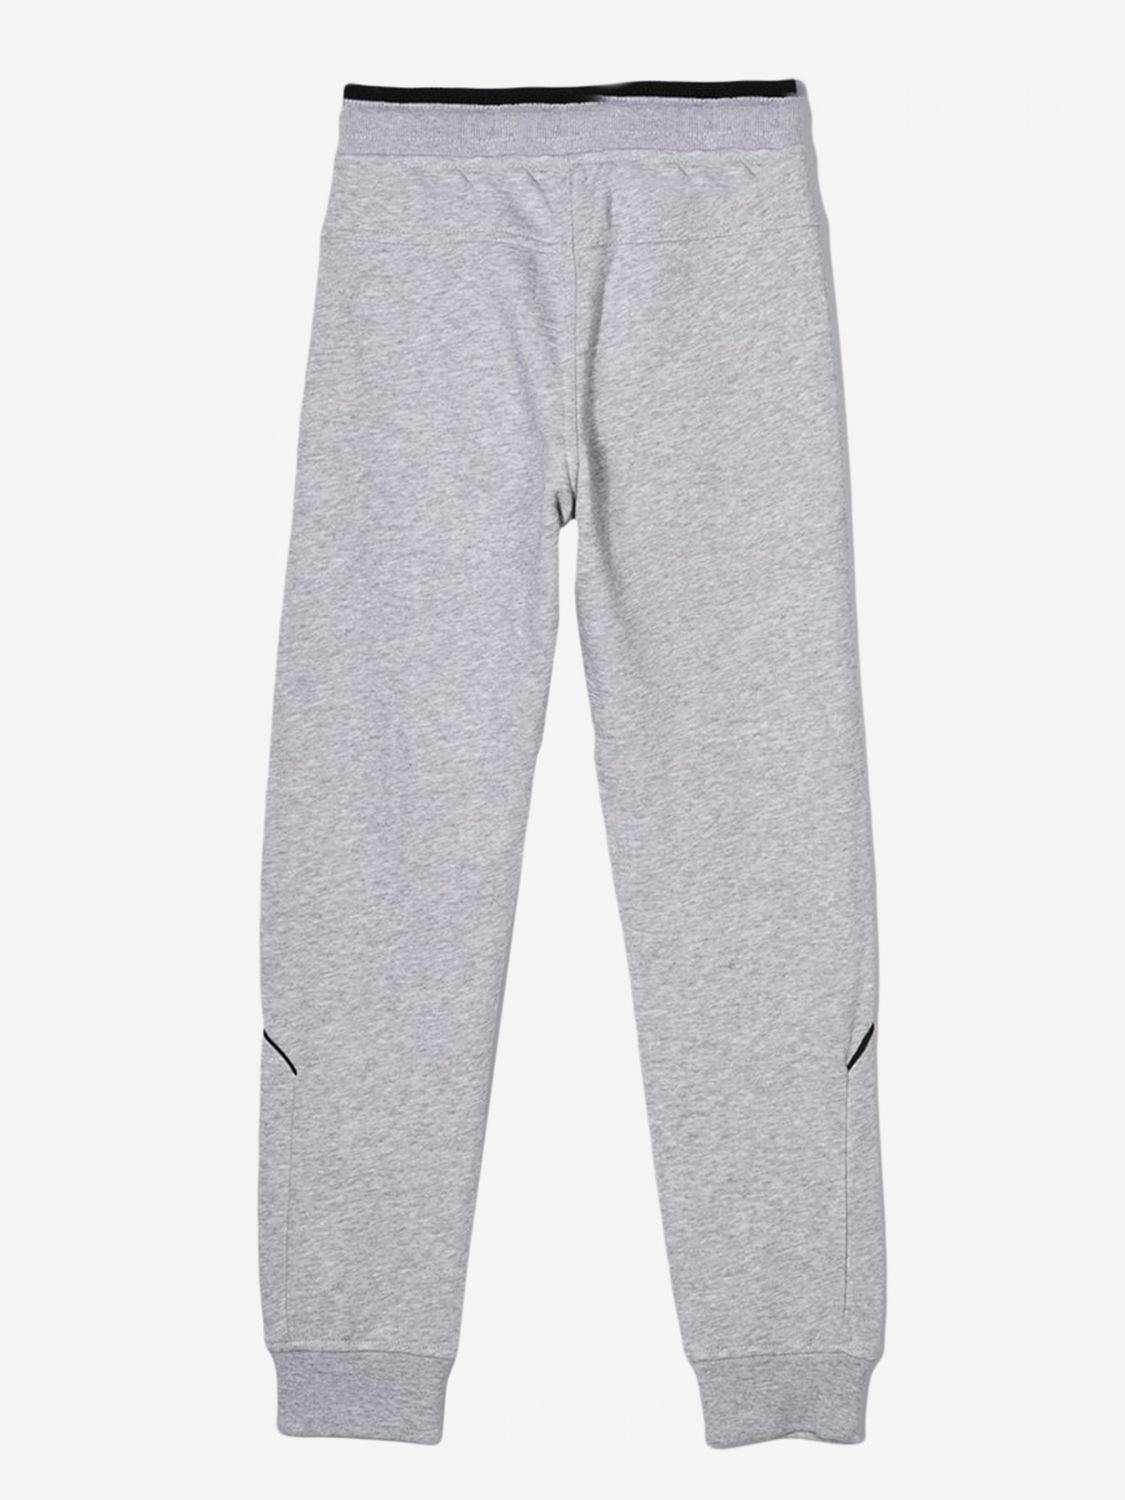 Hugo Boss jogging trousers with logo grey 2